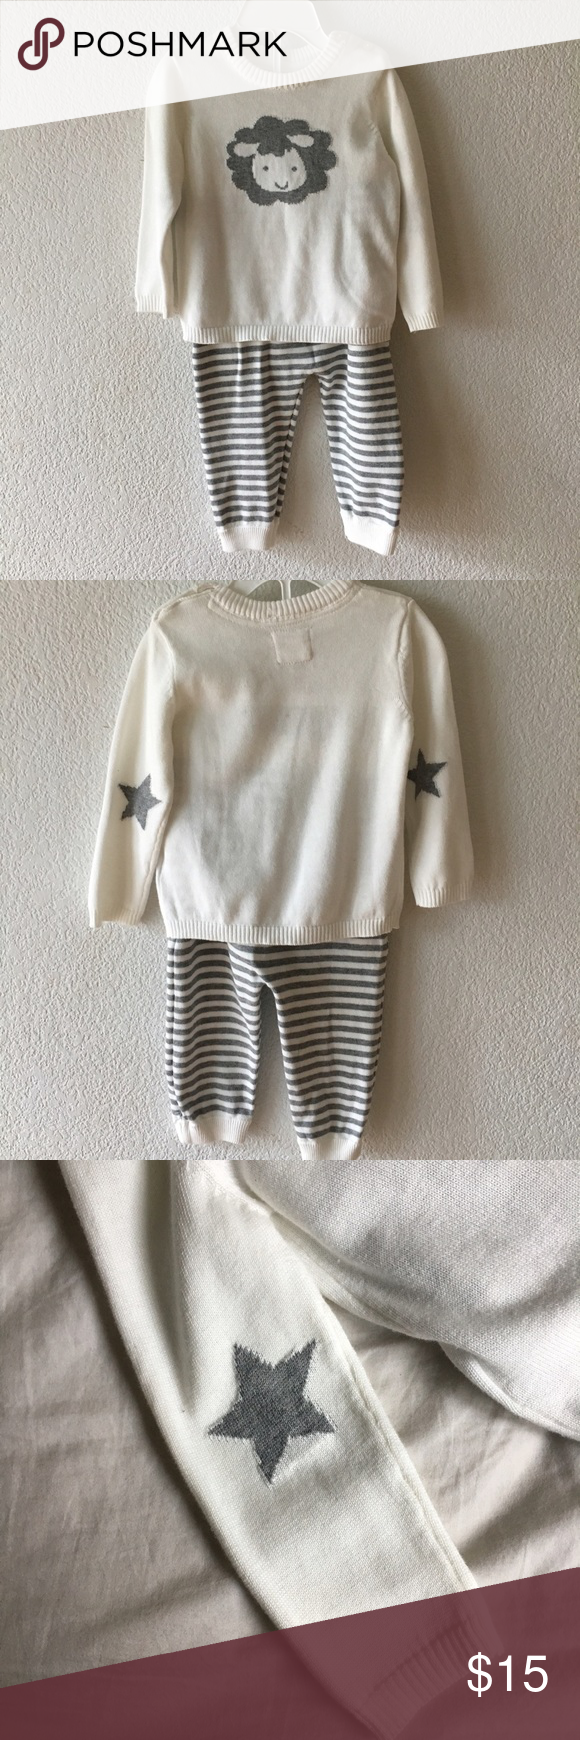 NWT Unisex Cotton Sweater and Pant Set | Sweater shirt, Matching ...